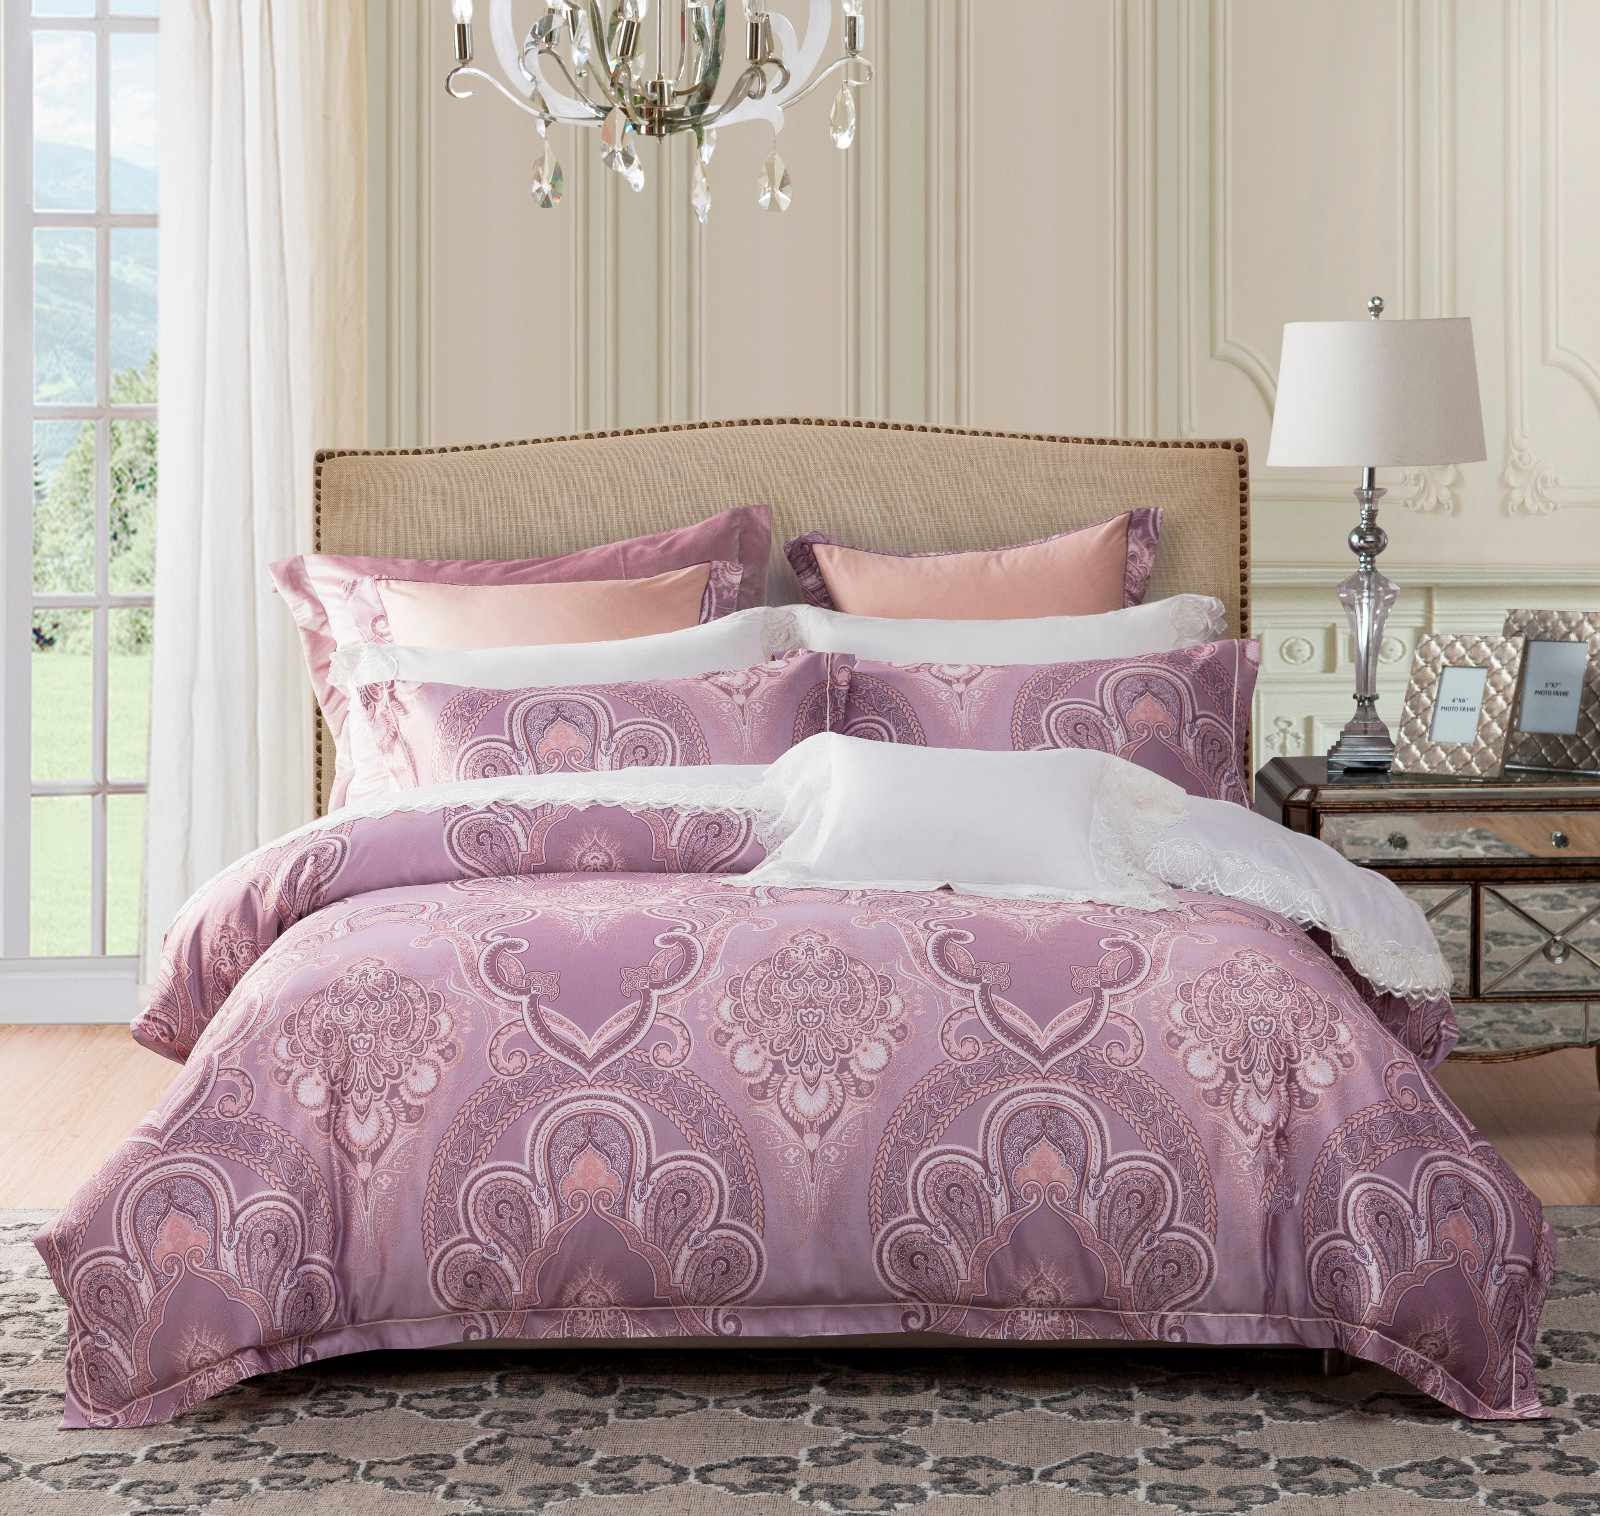 Jacquard Polyester and rayon Elegant Bed Linen   #6859